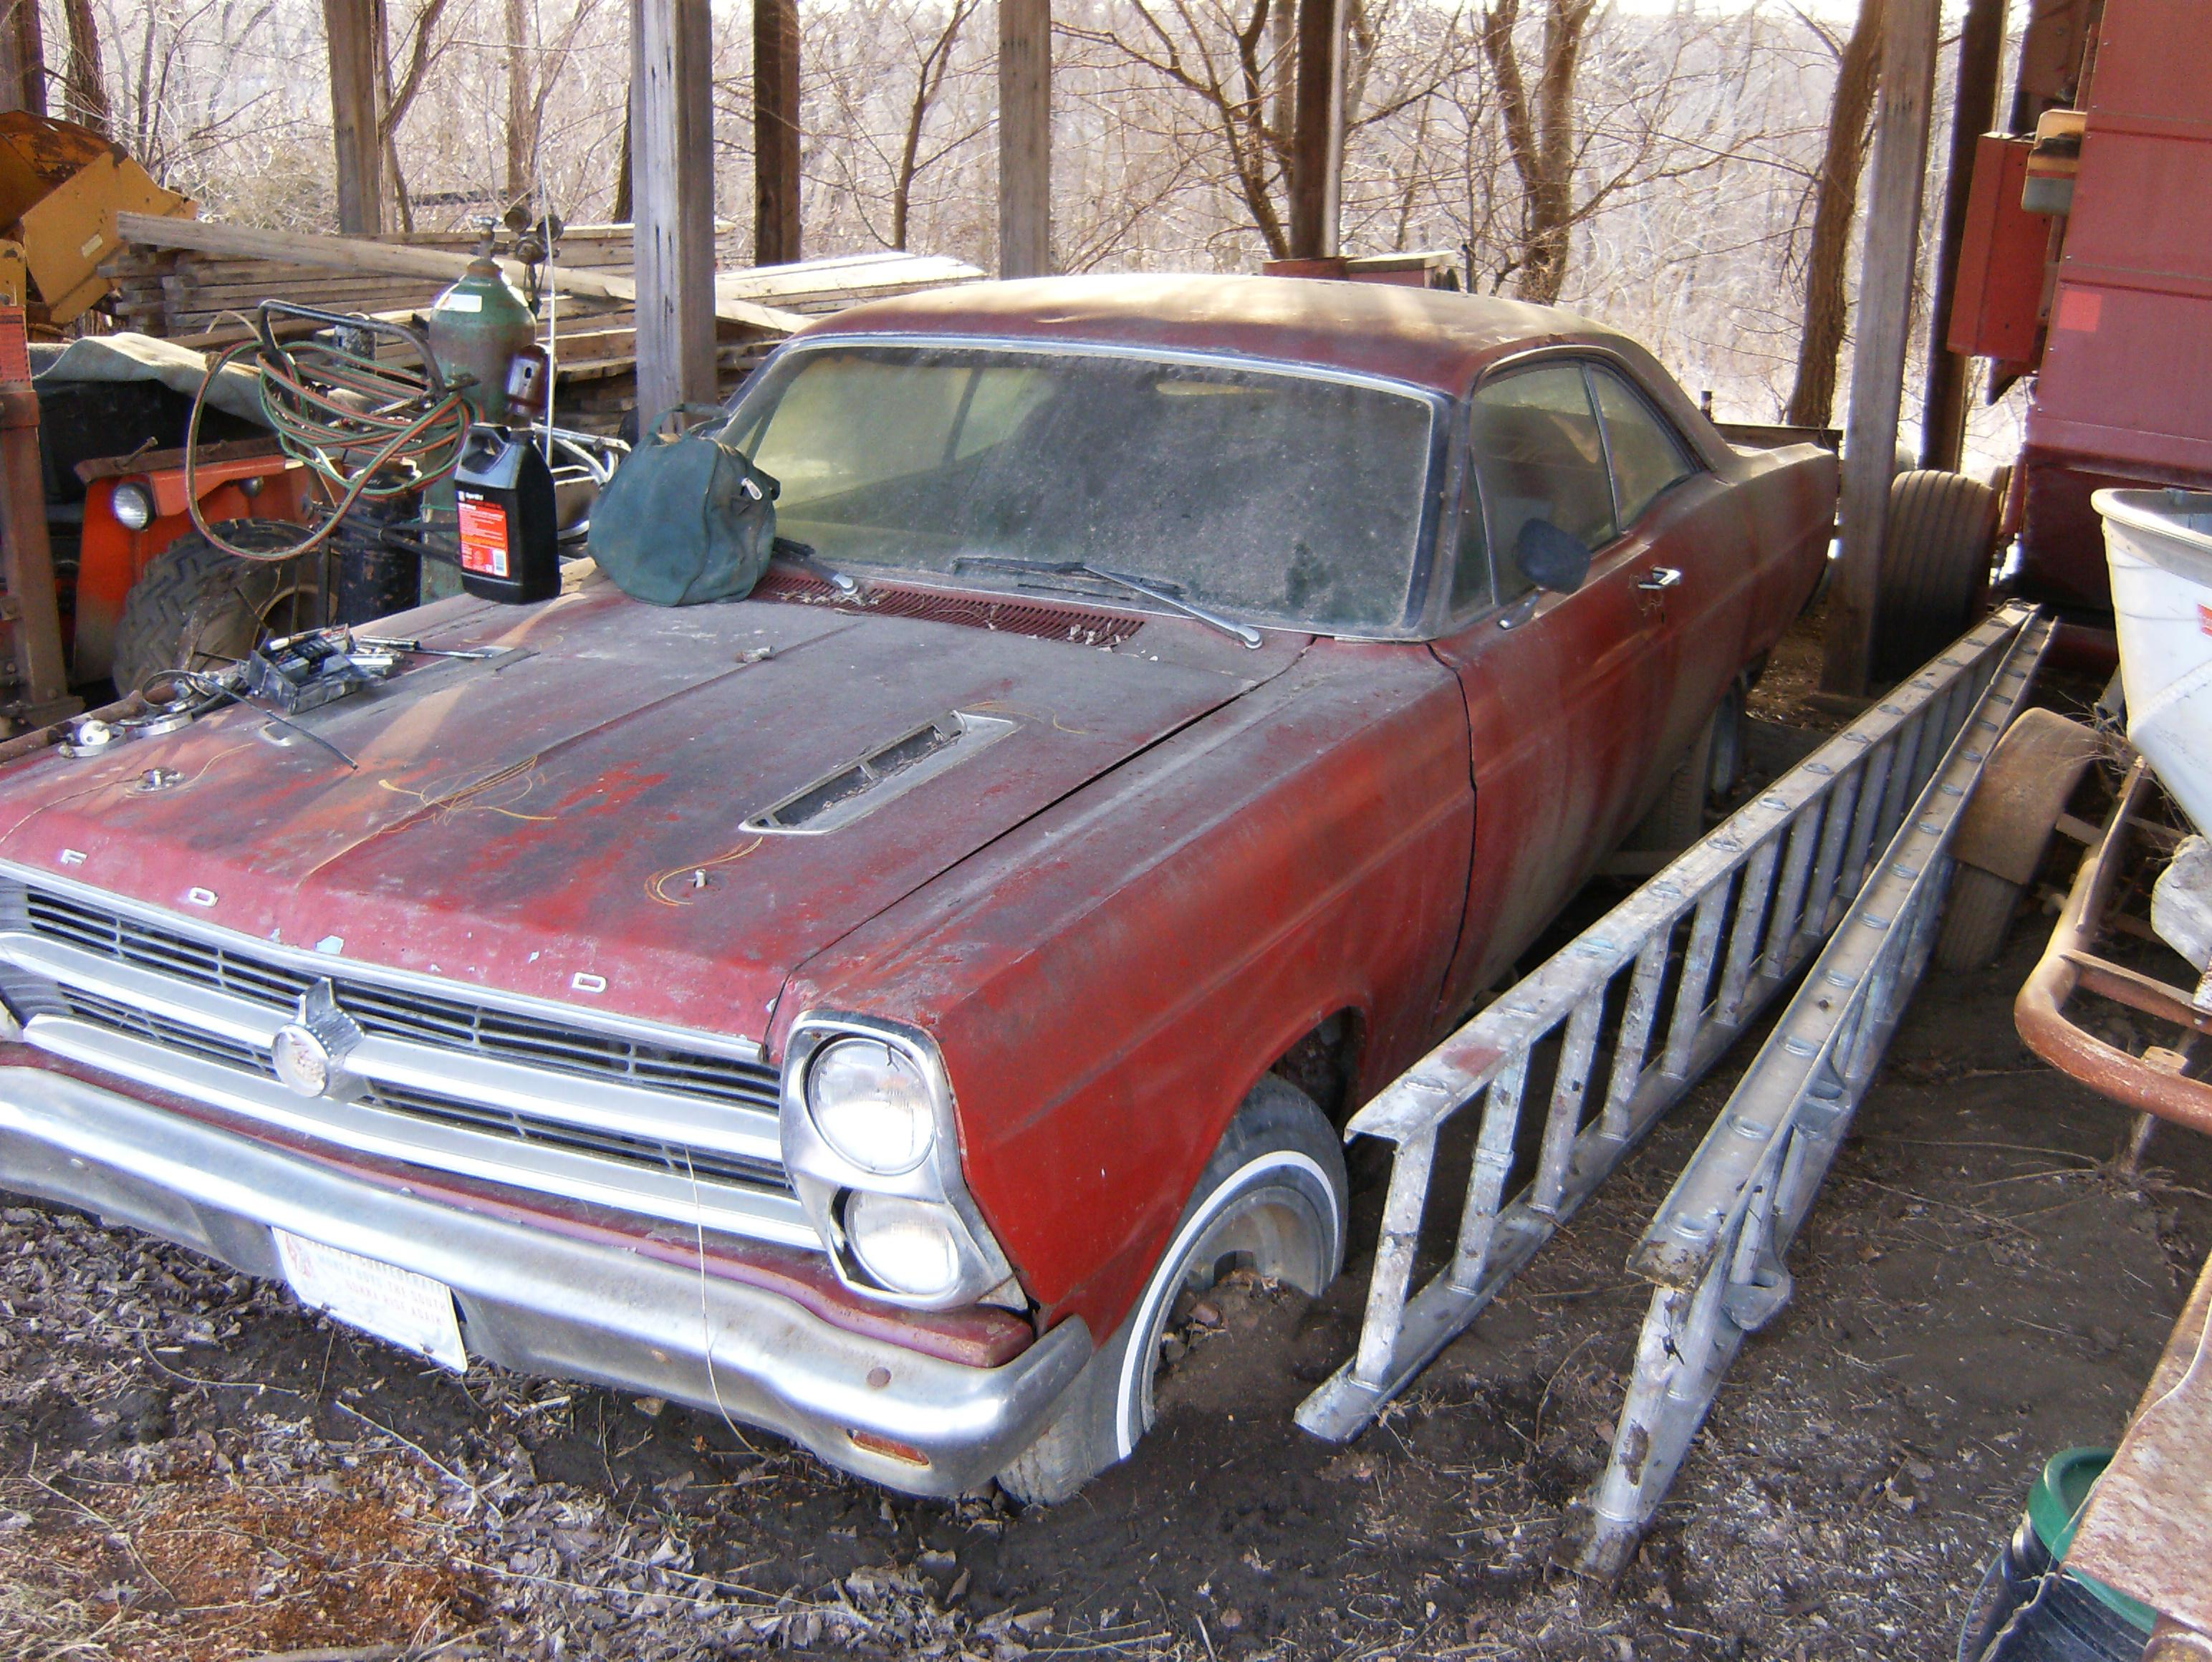 1966 Fairlane Gt For Sale Craigslist | Autos Weblog